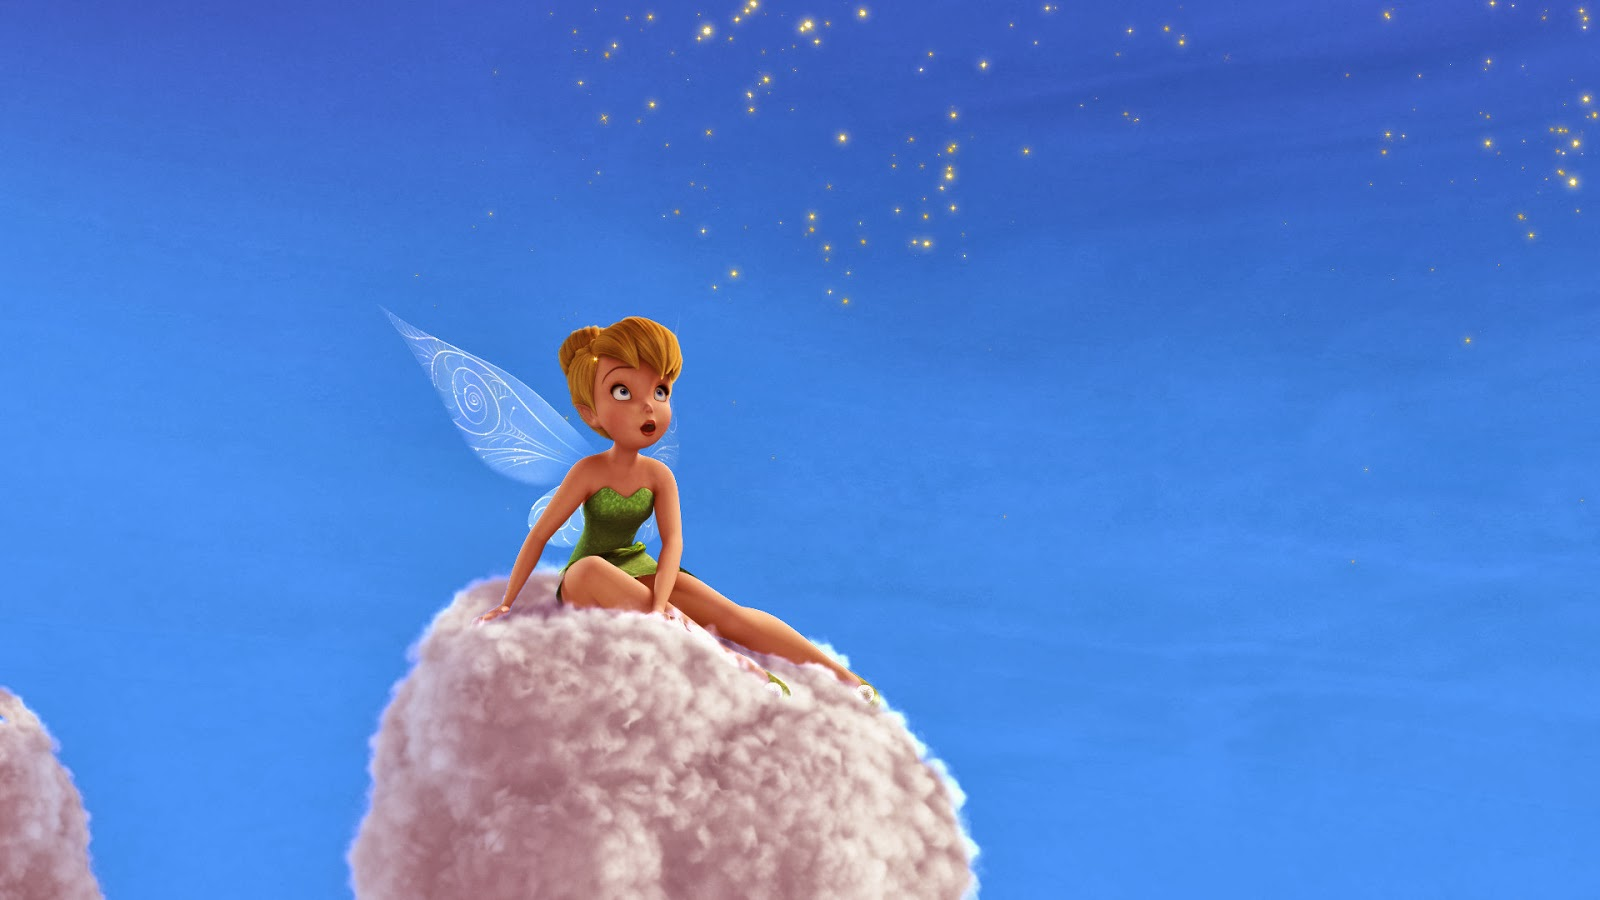 Wallpaper Tinkerbell HD 1080p